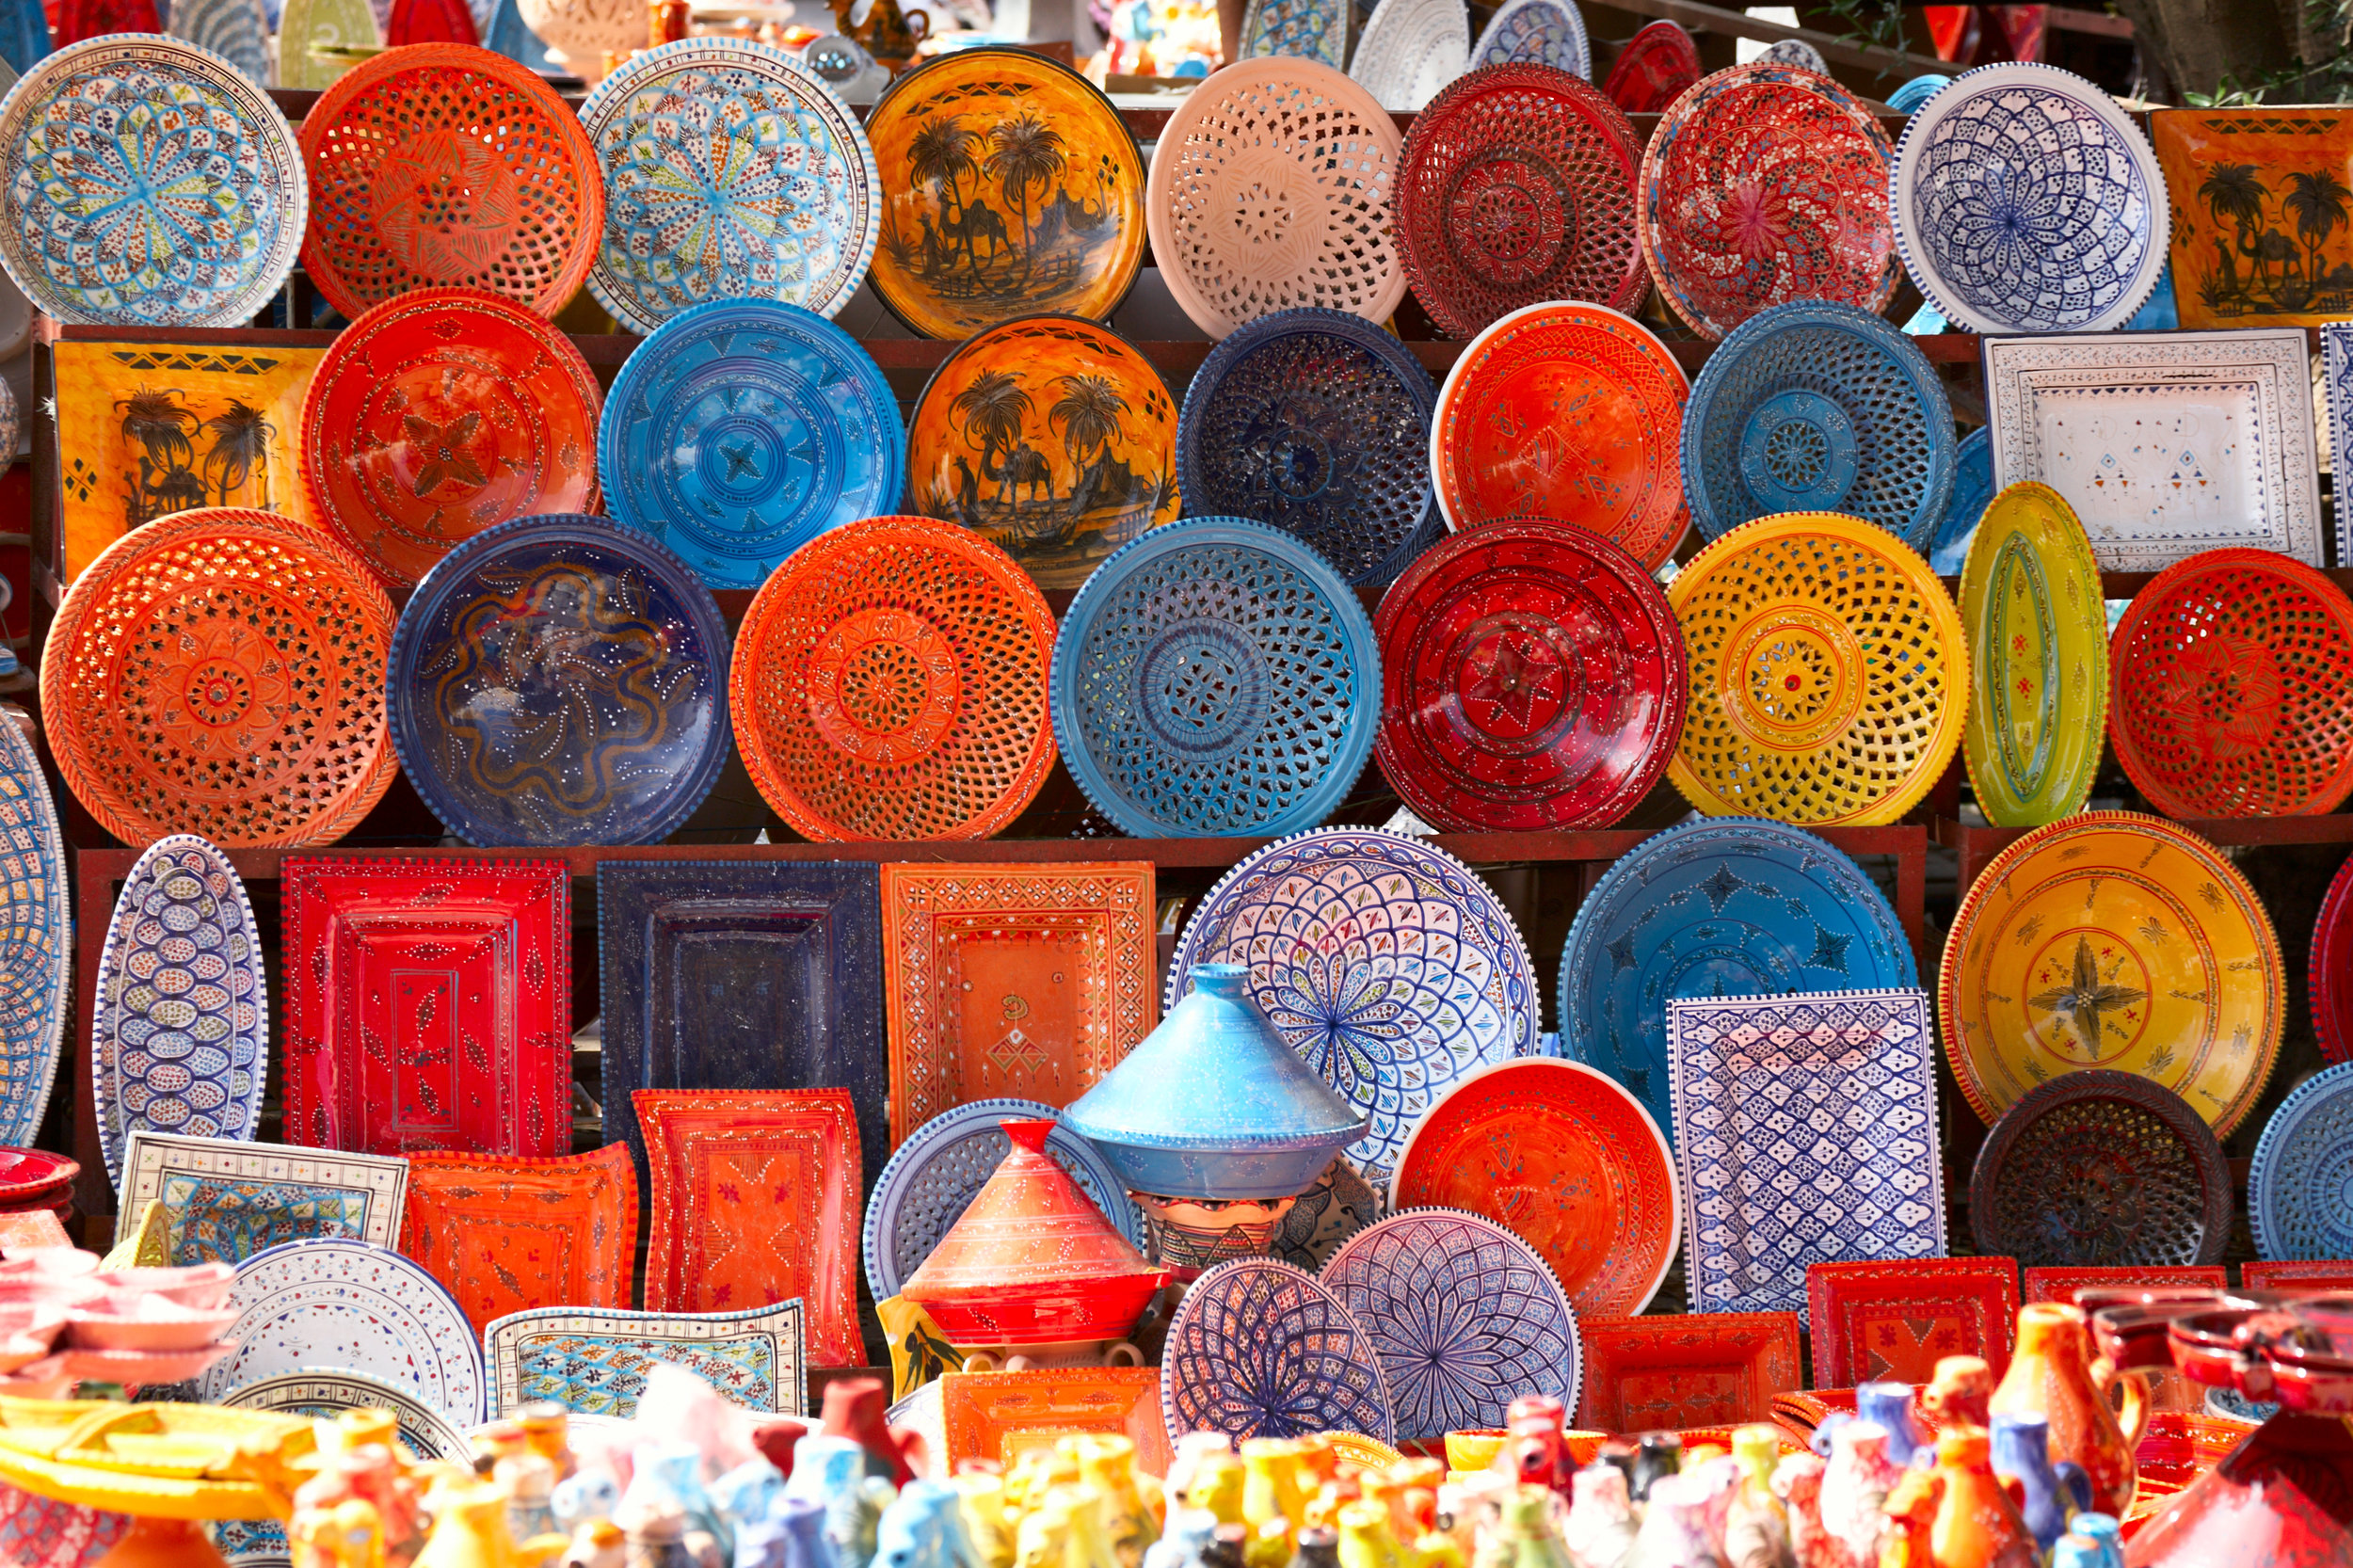 Traditional Handmade Plates in Morocco